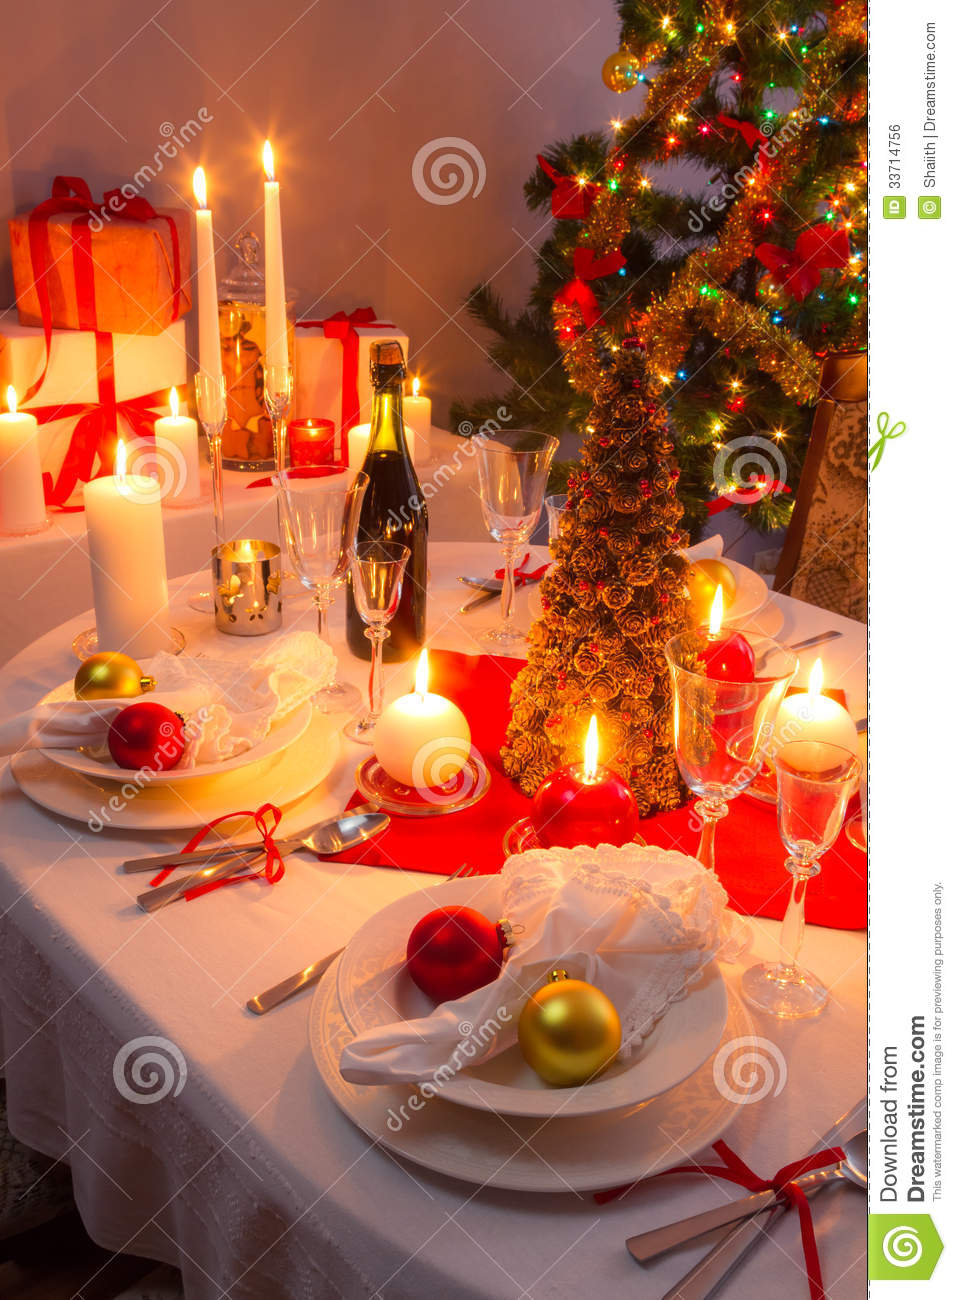 Christmas Eve Dinner For The Whole Family Stock Photo - Image of beautiful, celebrate: 33714756